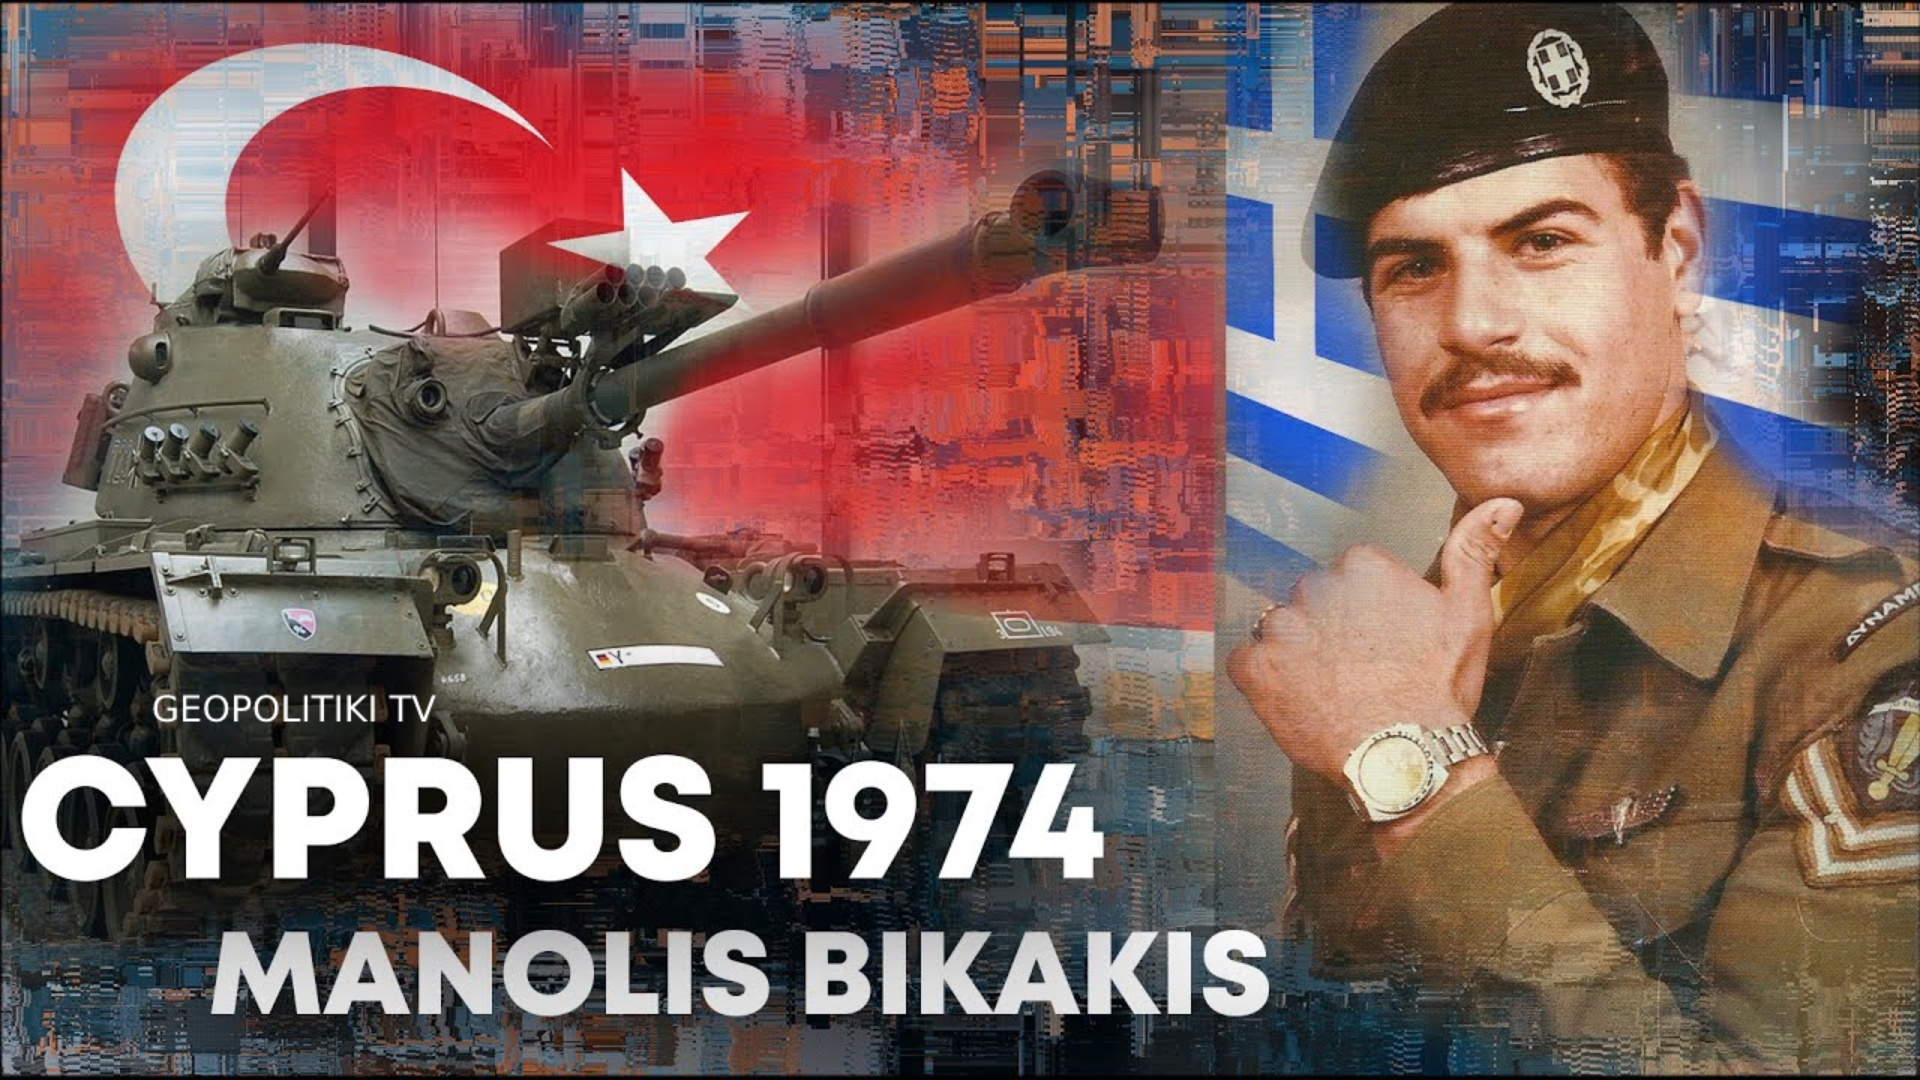 ONE MAN ARMY: The Greek Commando that destroyed SIX Turkish Tanks